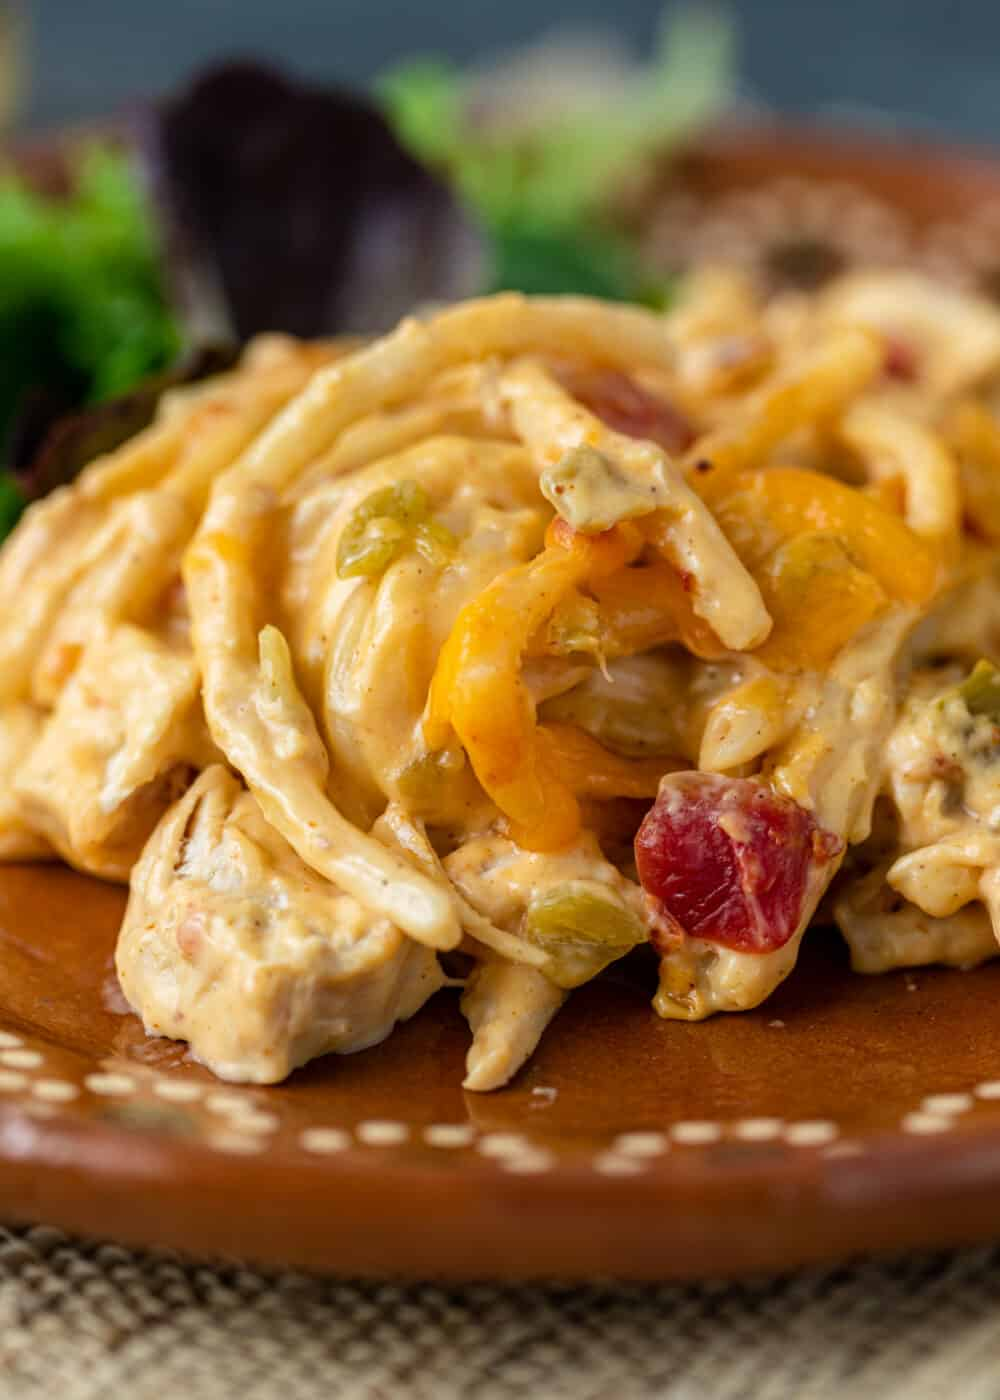 close up: serving of shredded rotisserie chicken spaghetti on plate